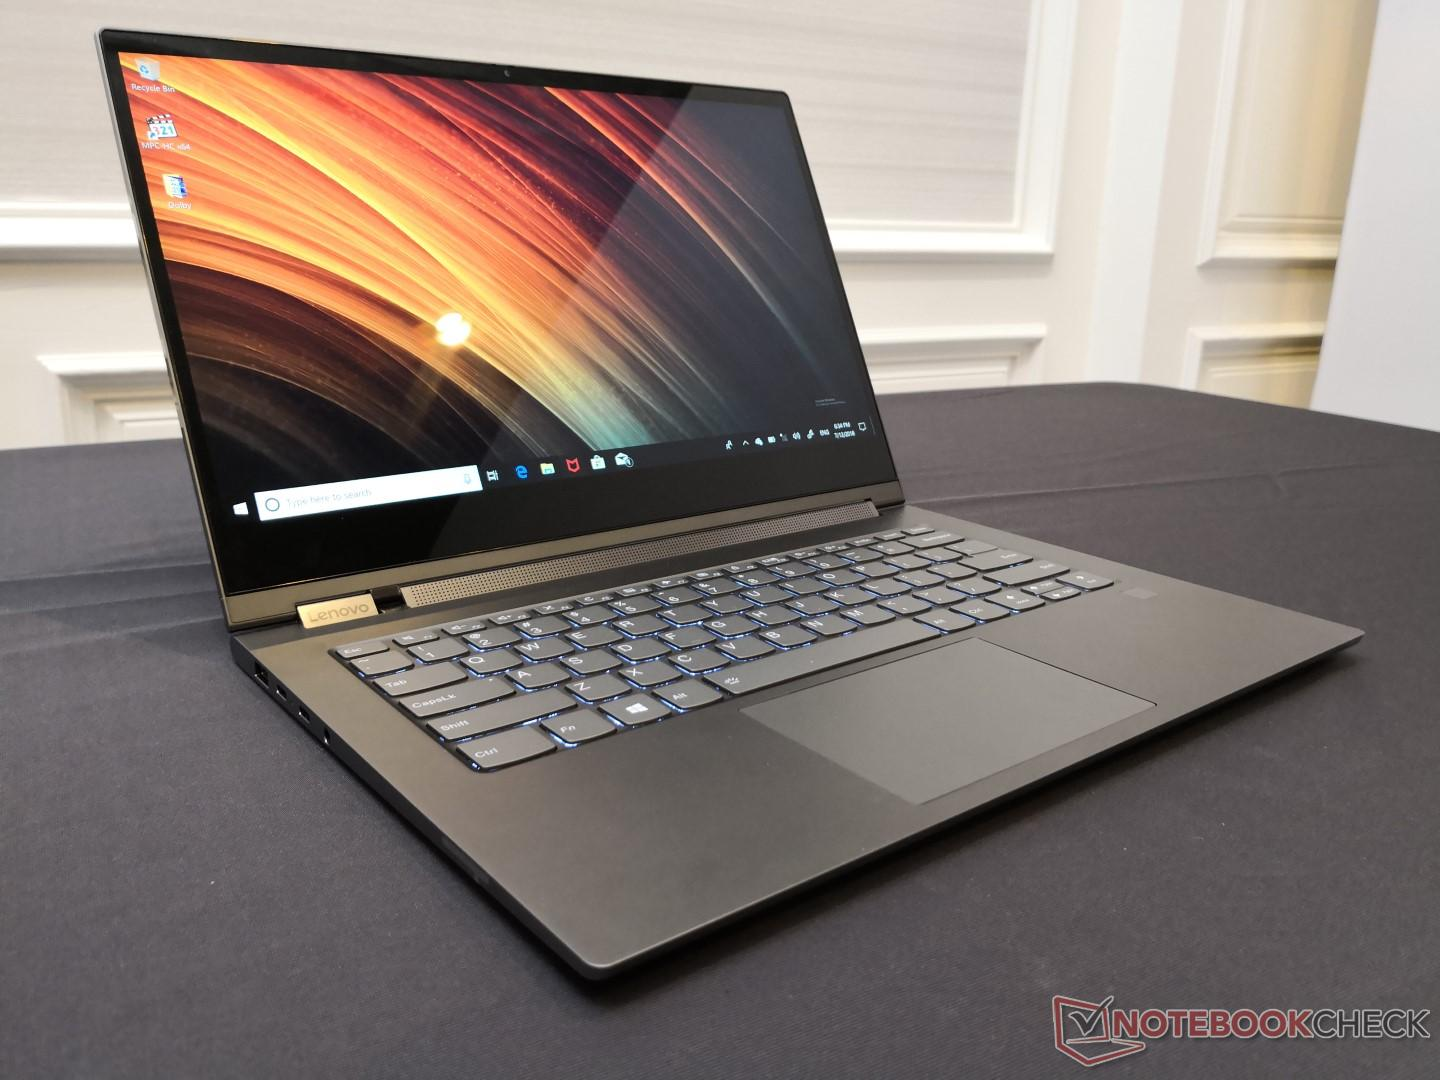 Watchband no more — Lenovo Yoga C930 convertible is ditching